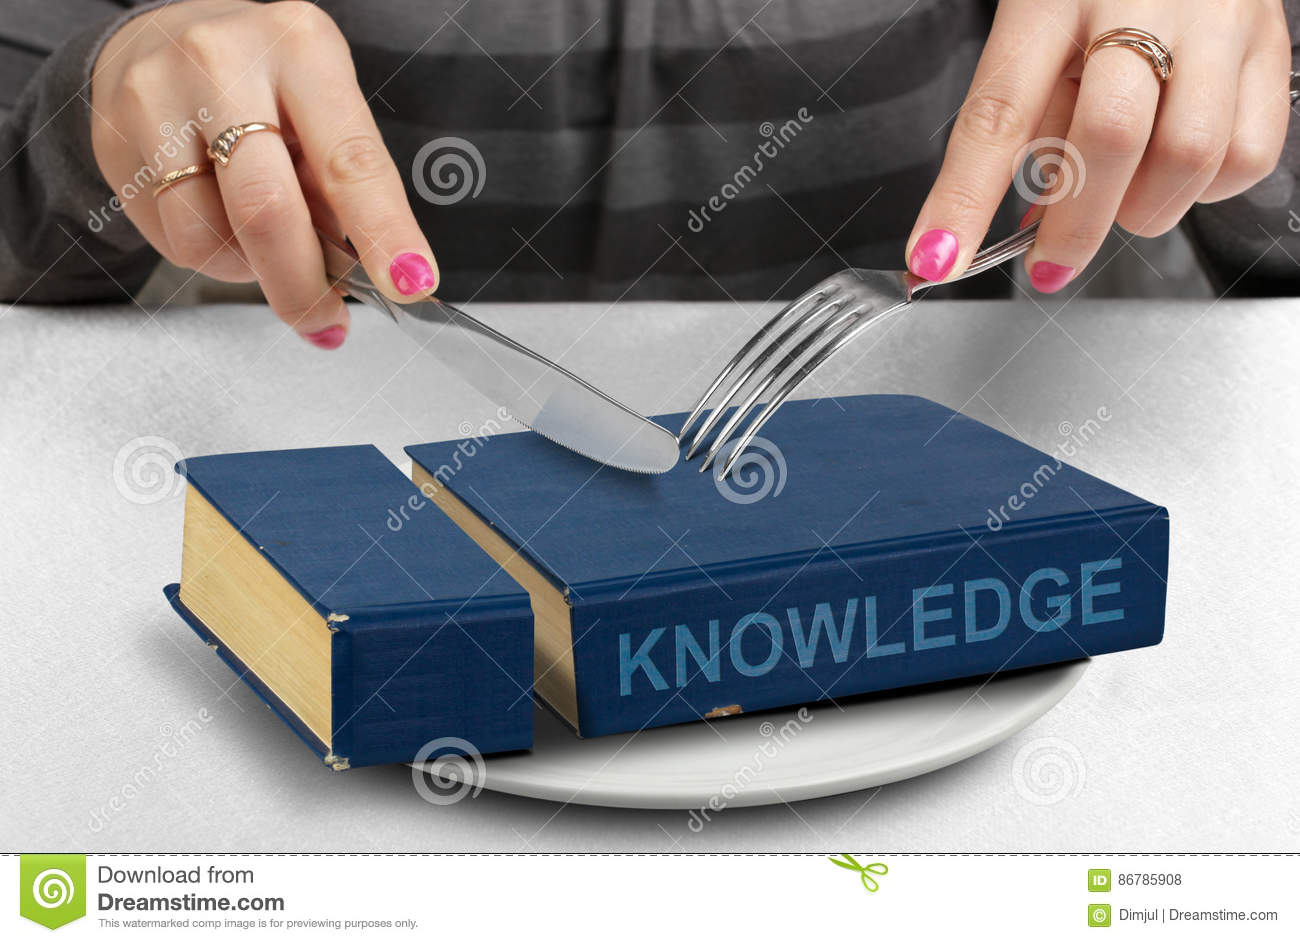 Consume knowledge concept, hands cut book on plate